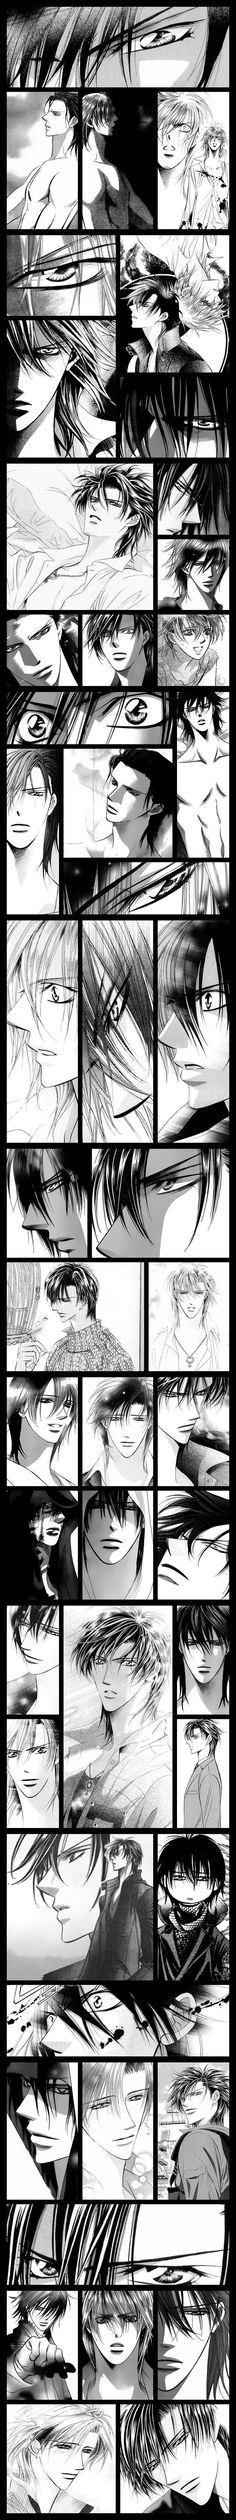 The many faces of Ren